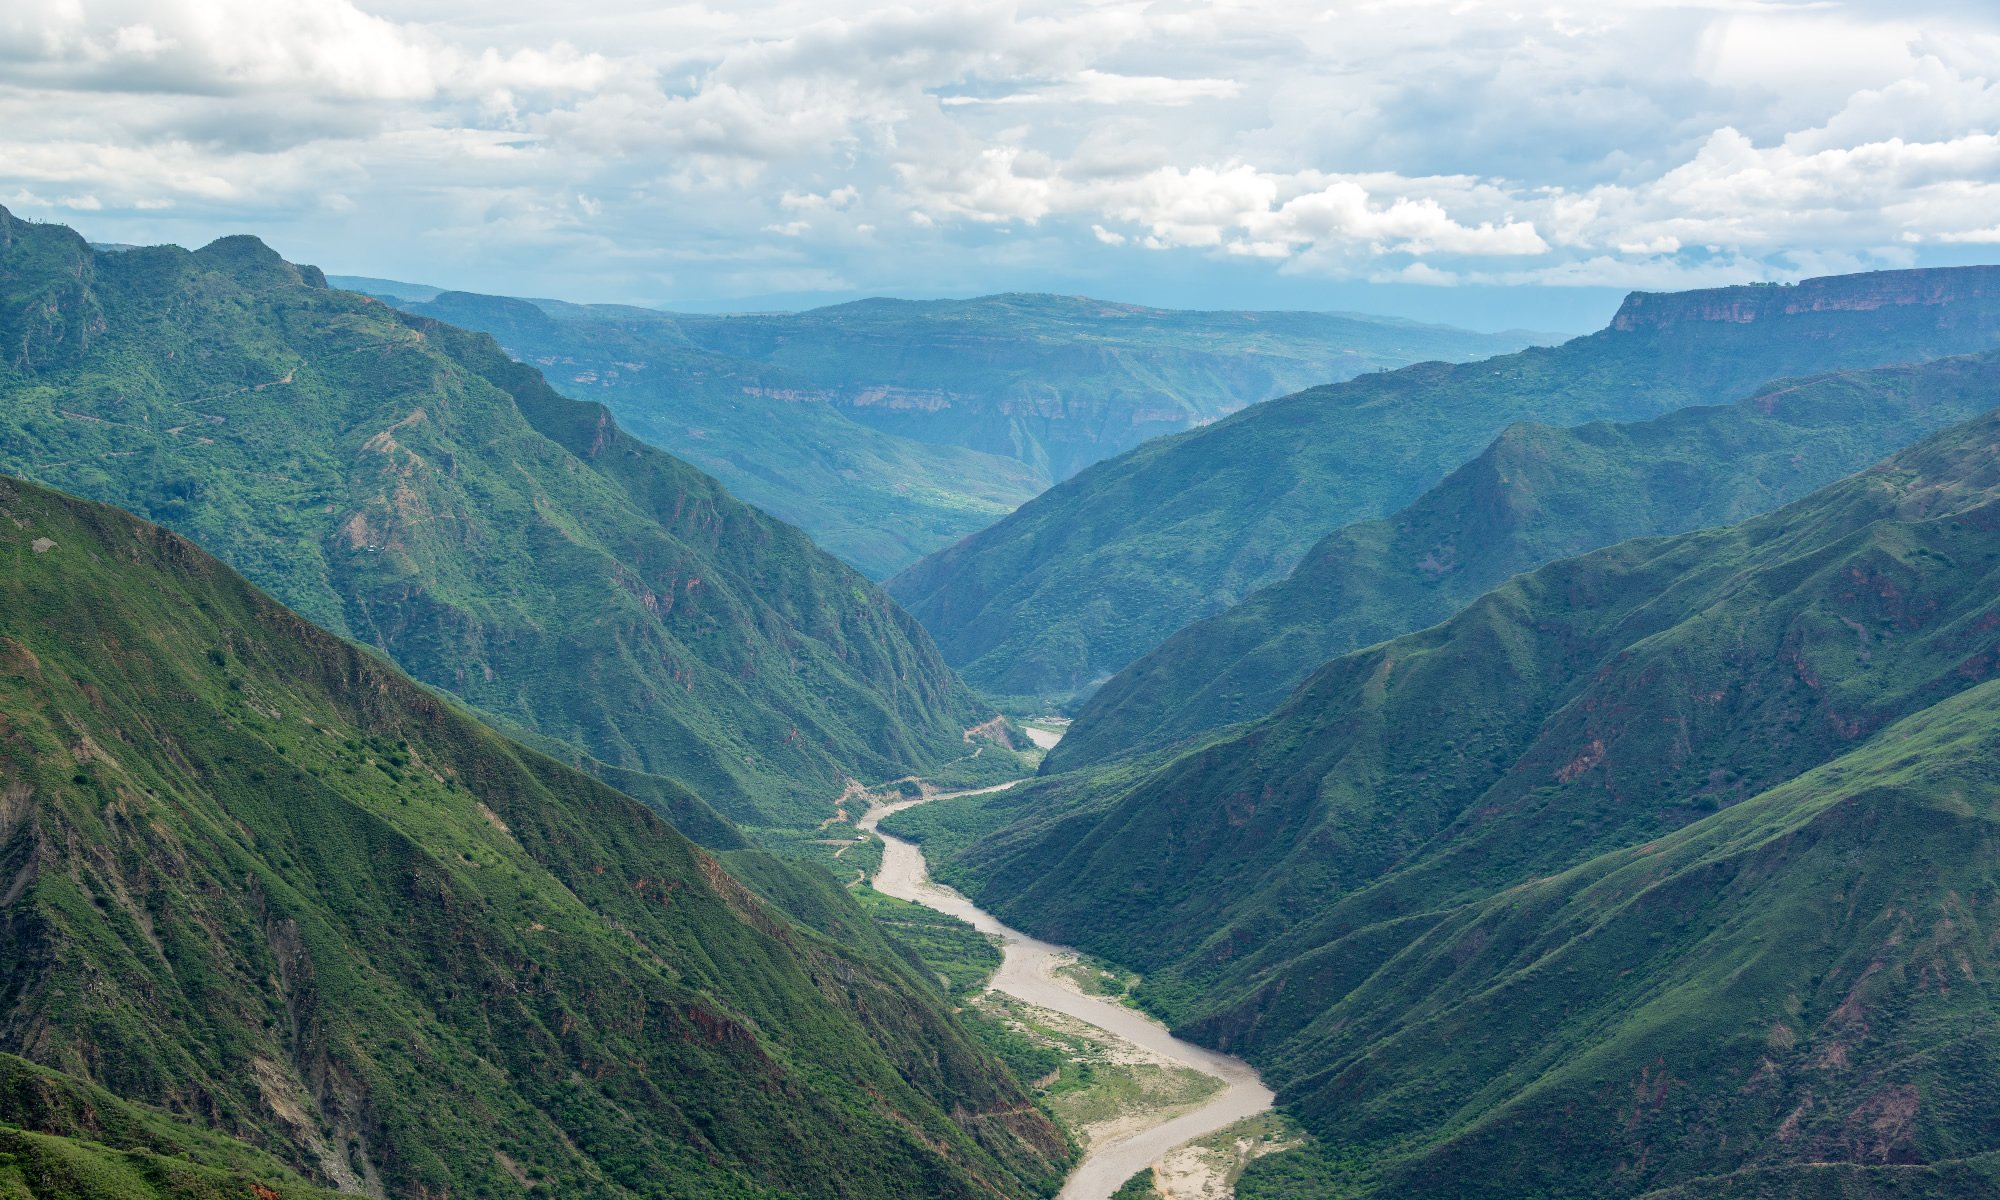 Chicamocha Canyon in Colombia